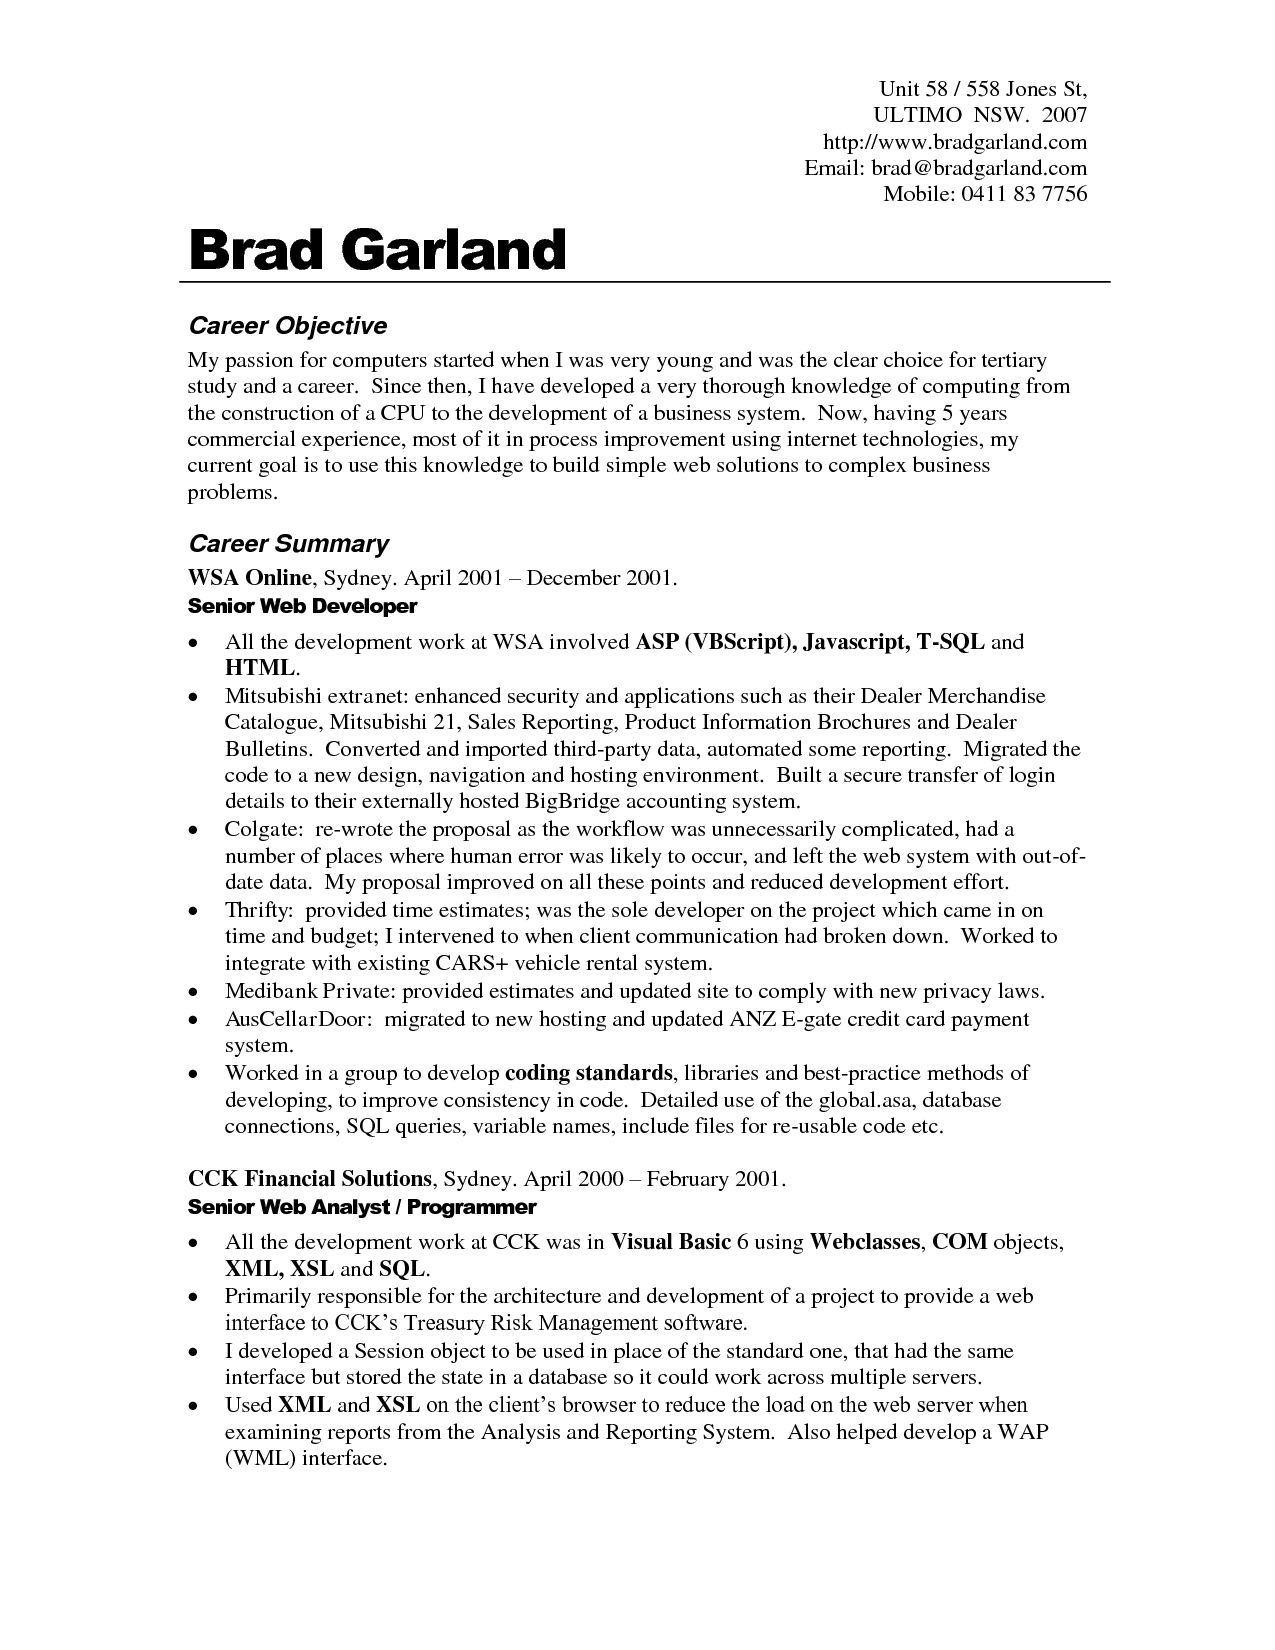 Samples Of Objectives For A Resume Gorgeous Resume Examples Job Objective  Sample Resume Entry Level And .